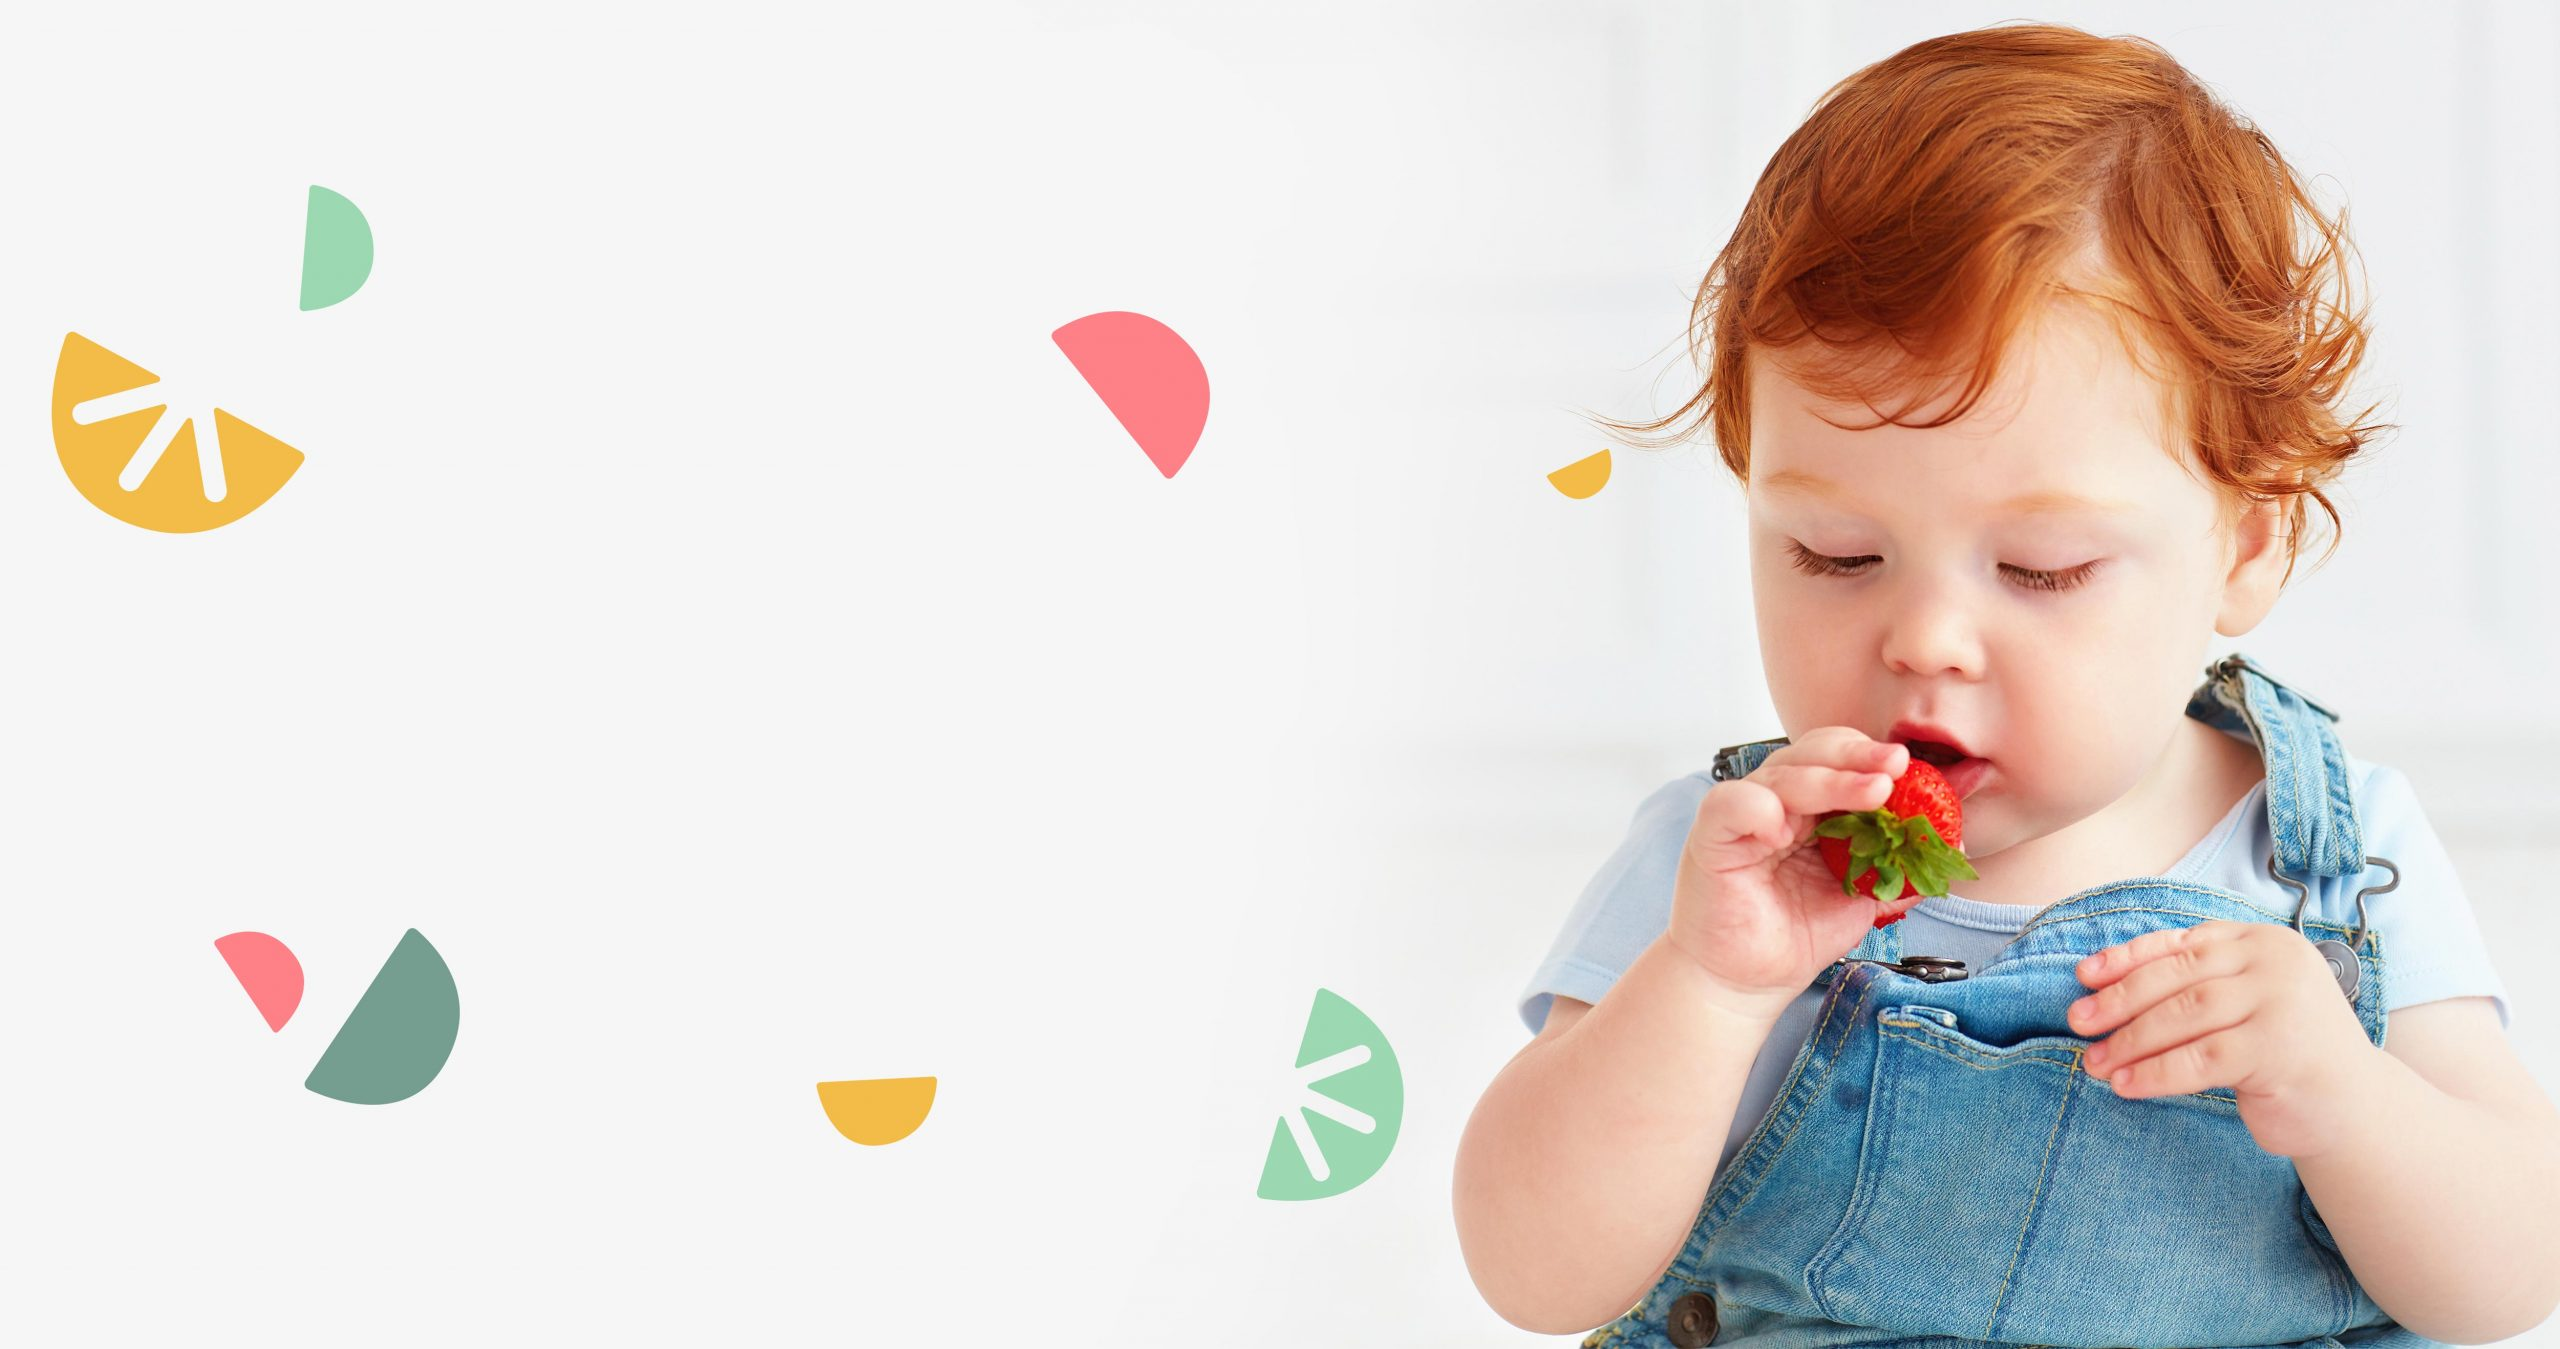 blw - baby led weaning - talleres y cursos